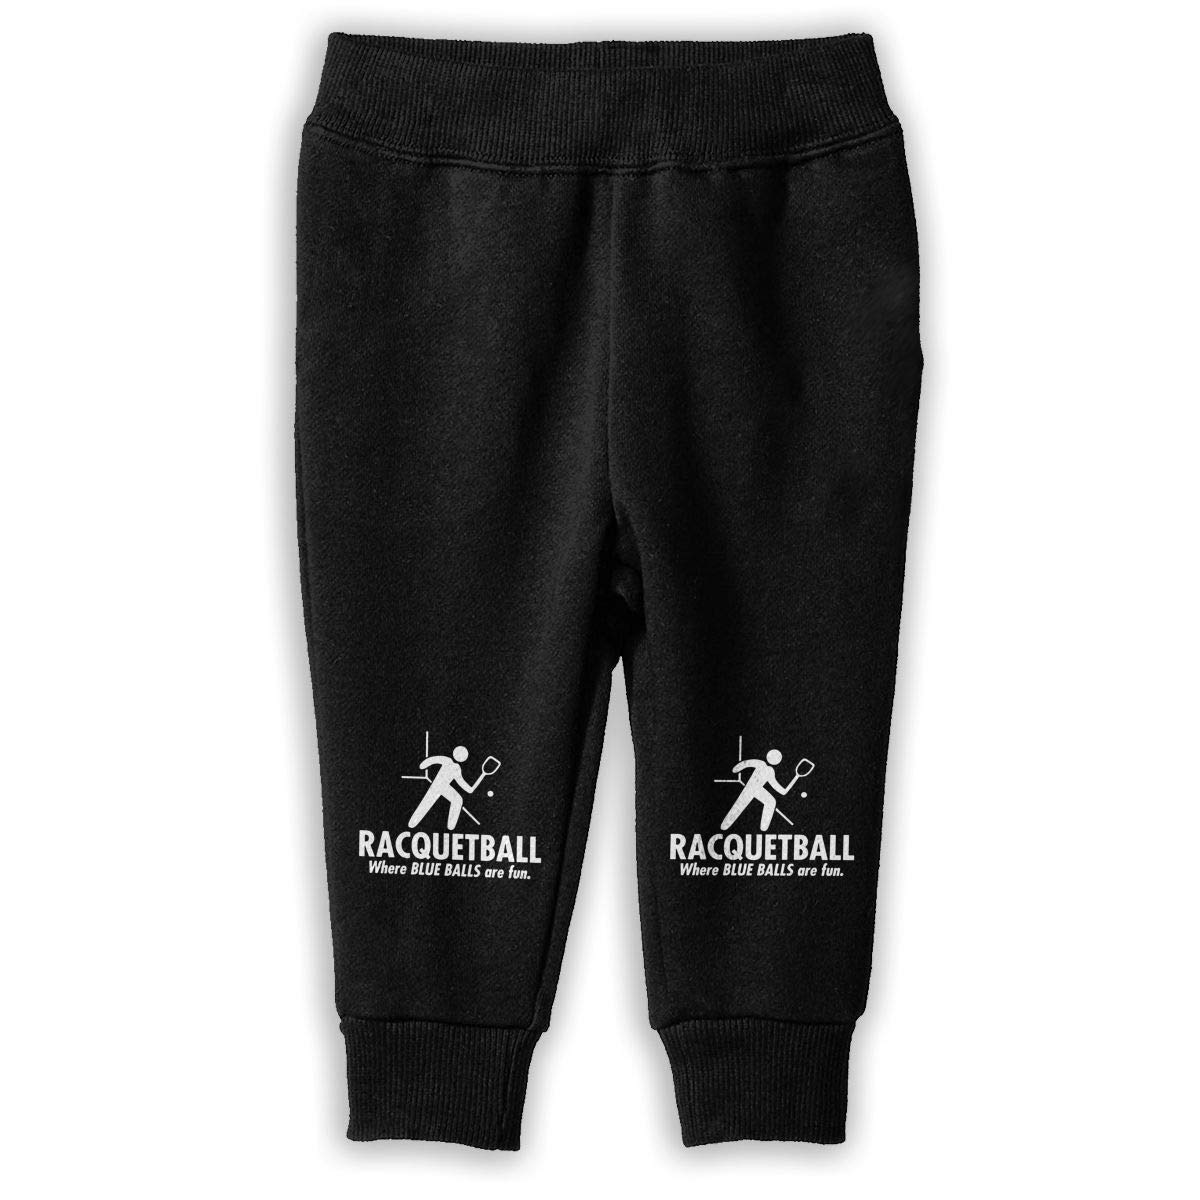 Printed Raquetball Where Blue Balls Offensive Sarcasm Child Boys Girls Unisex Running Sweatpants